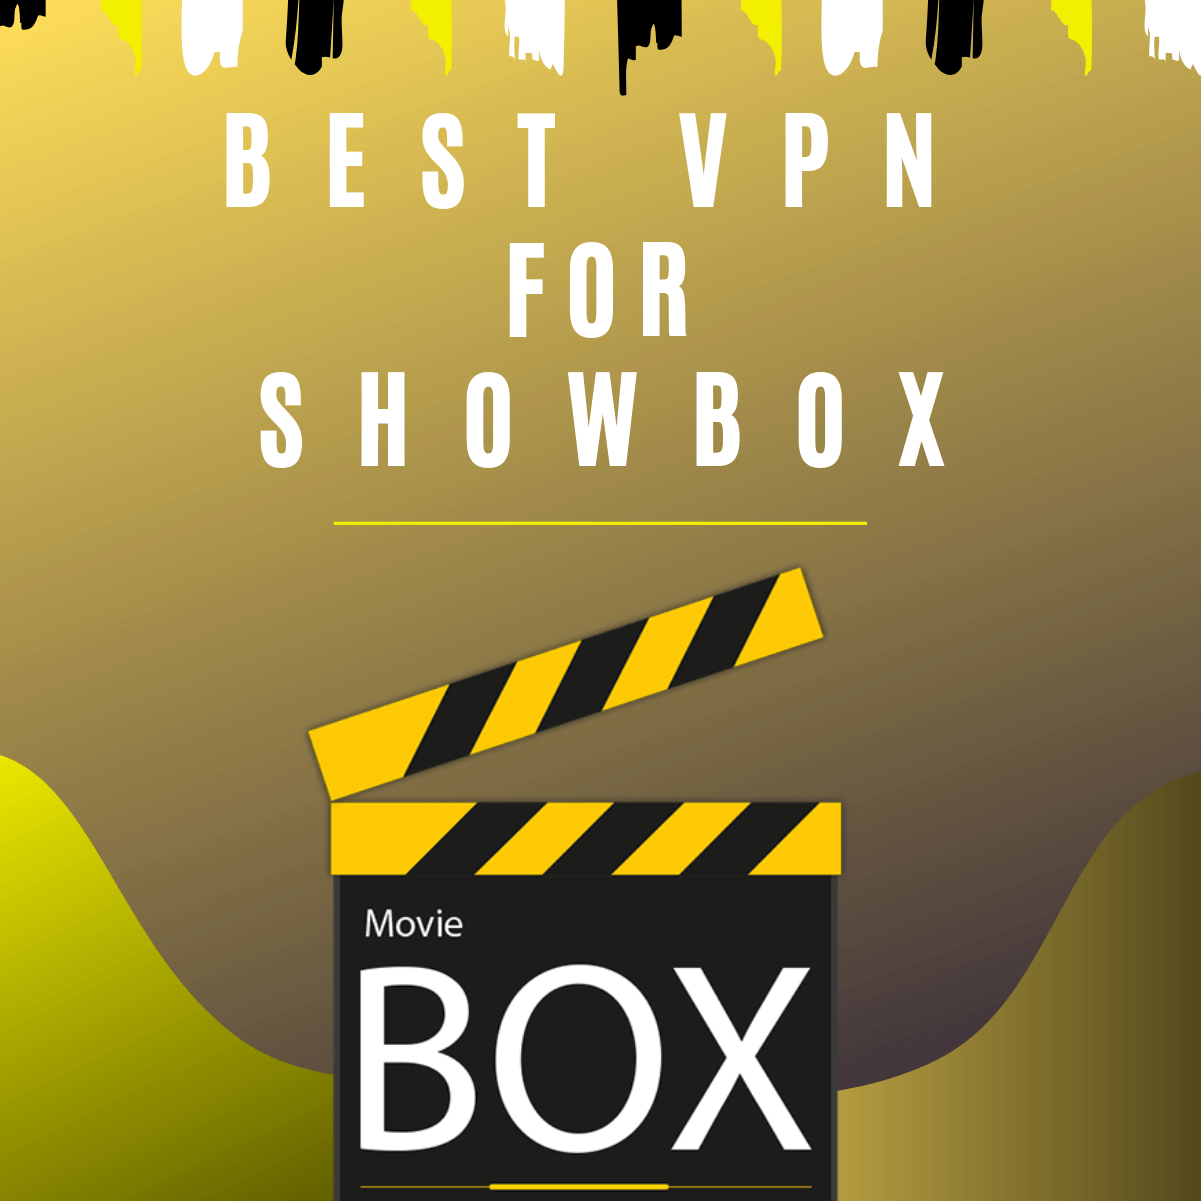 Best VPN for Showbox in 2019 - Explore Unlimited